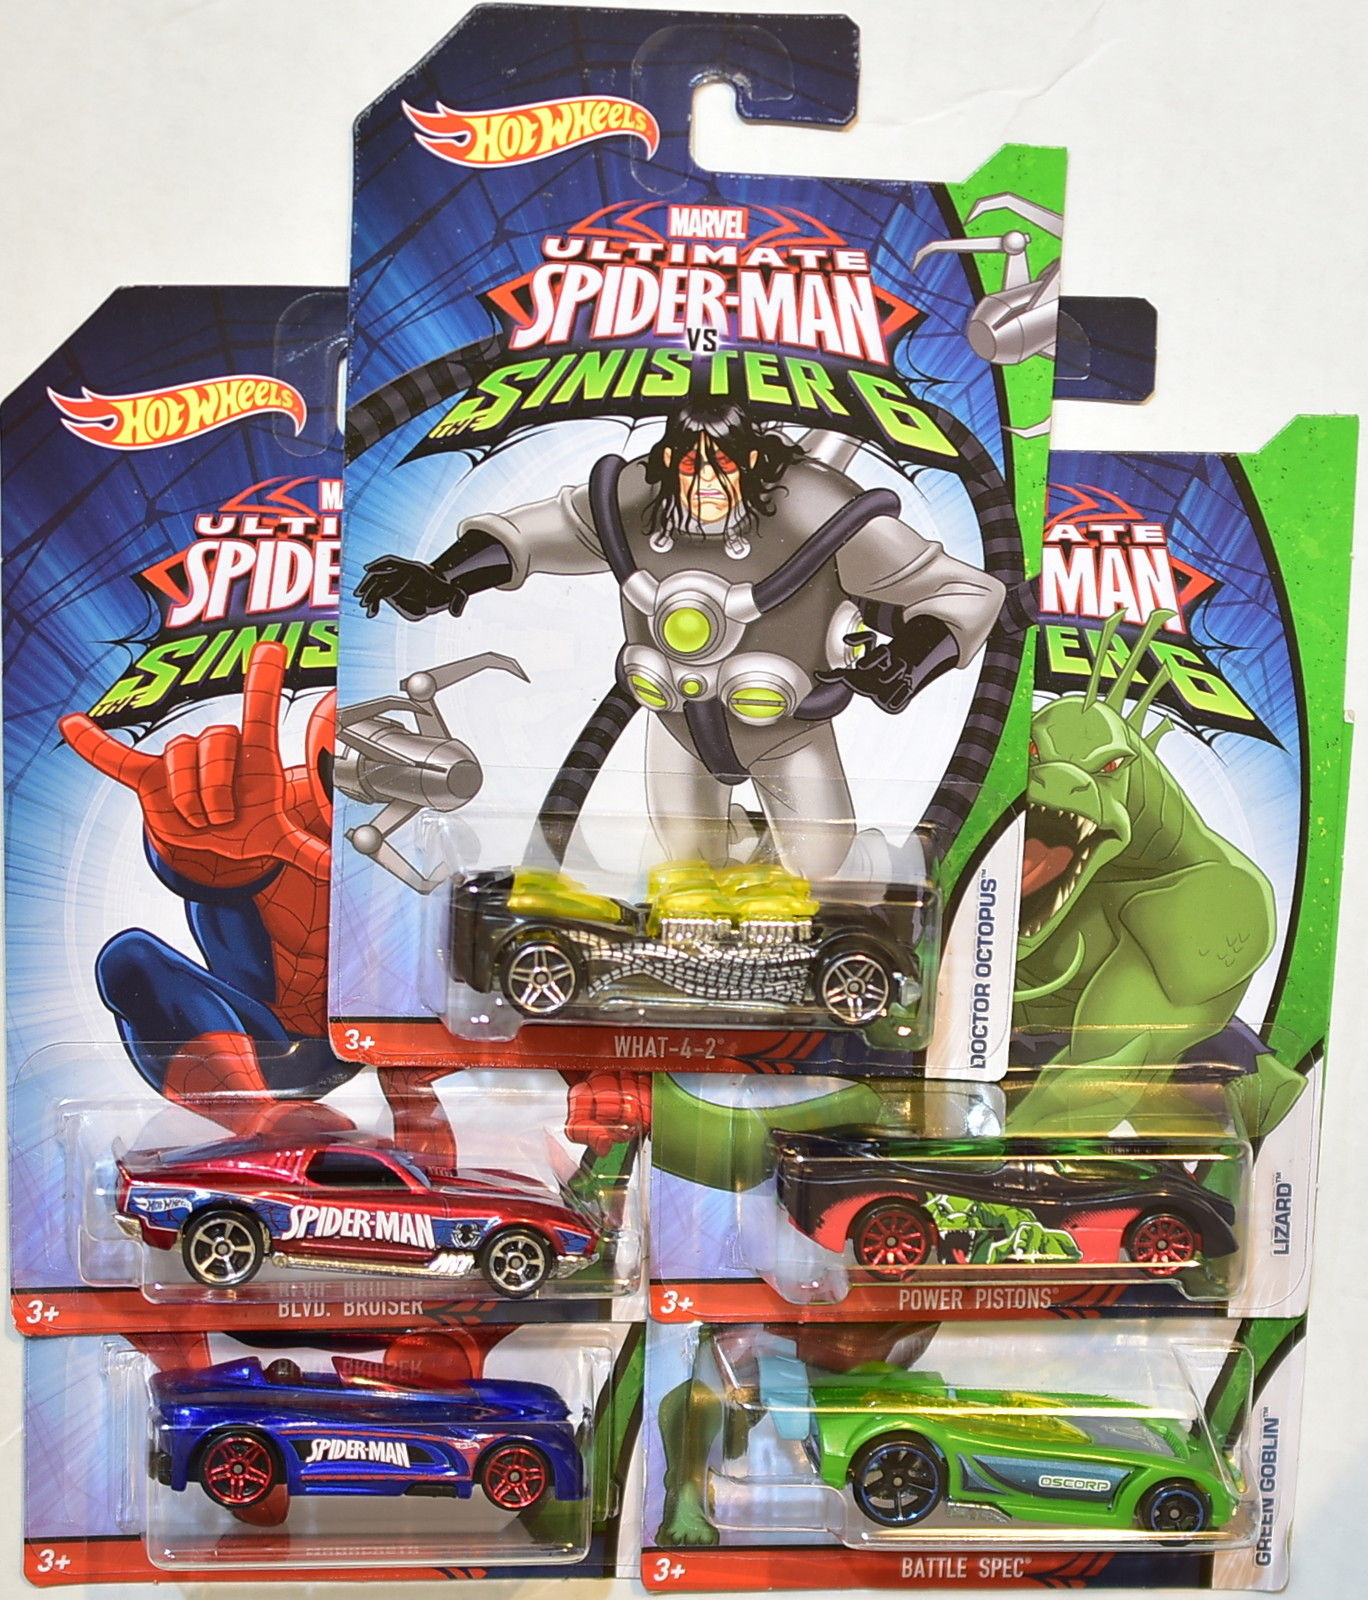 HOT WHEELS MARVEL 2016 ULTIMATE SINISTER 6 SPIDER-MAN SET OF 5 E+